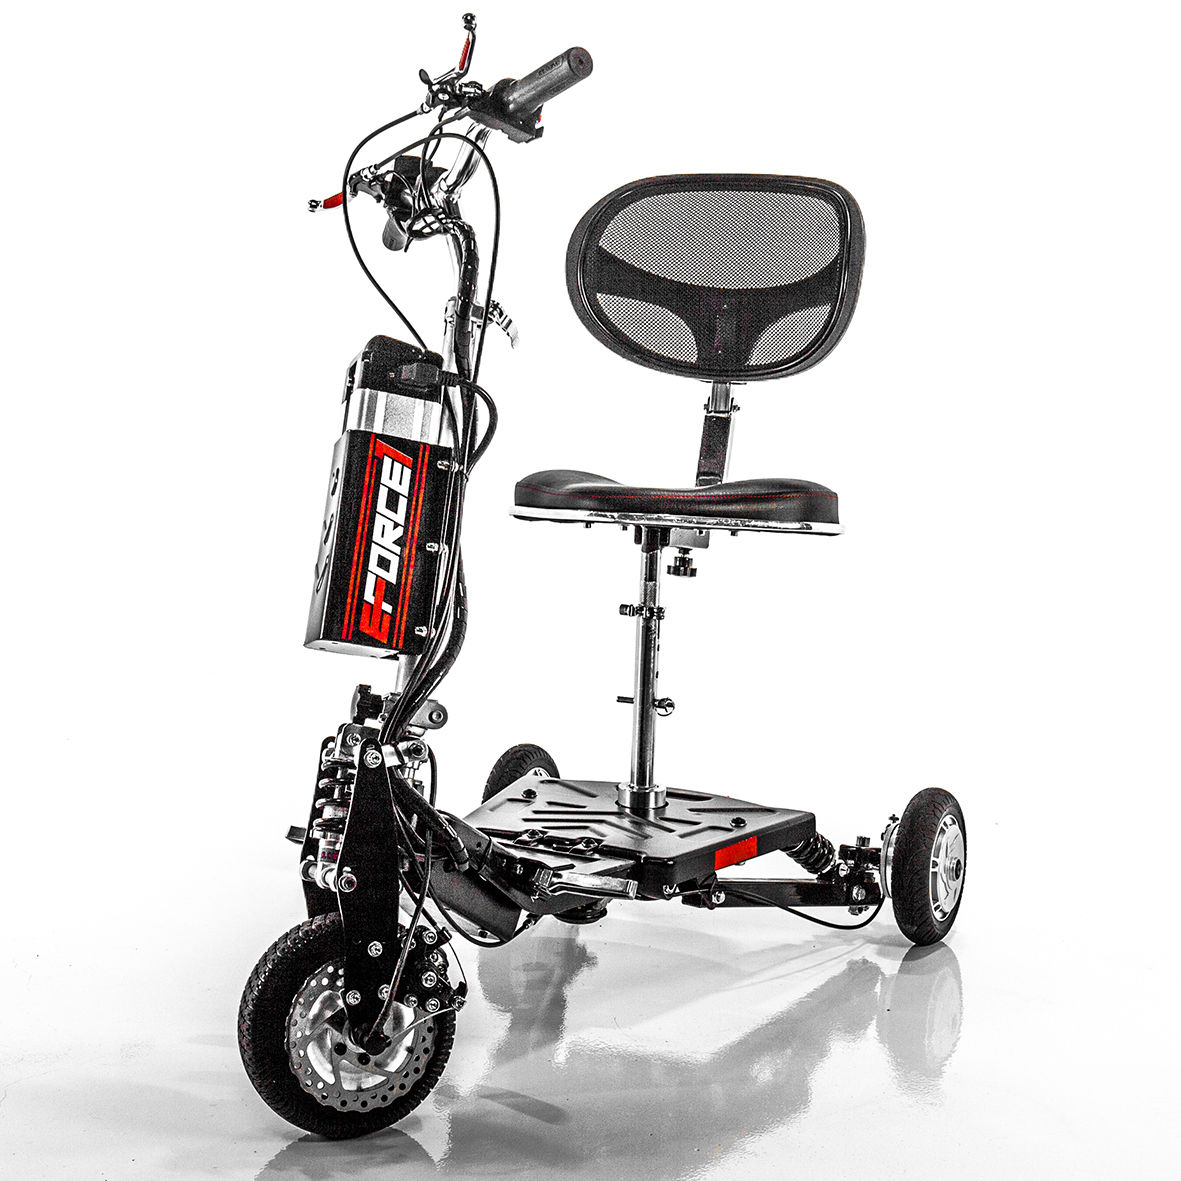 EWheels EForce-1 Fast Electric Scooter Lithium Power Speed 12 mph EW07, EForce-1 by E-Wheels